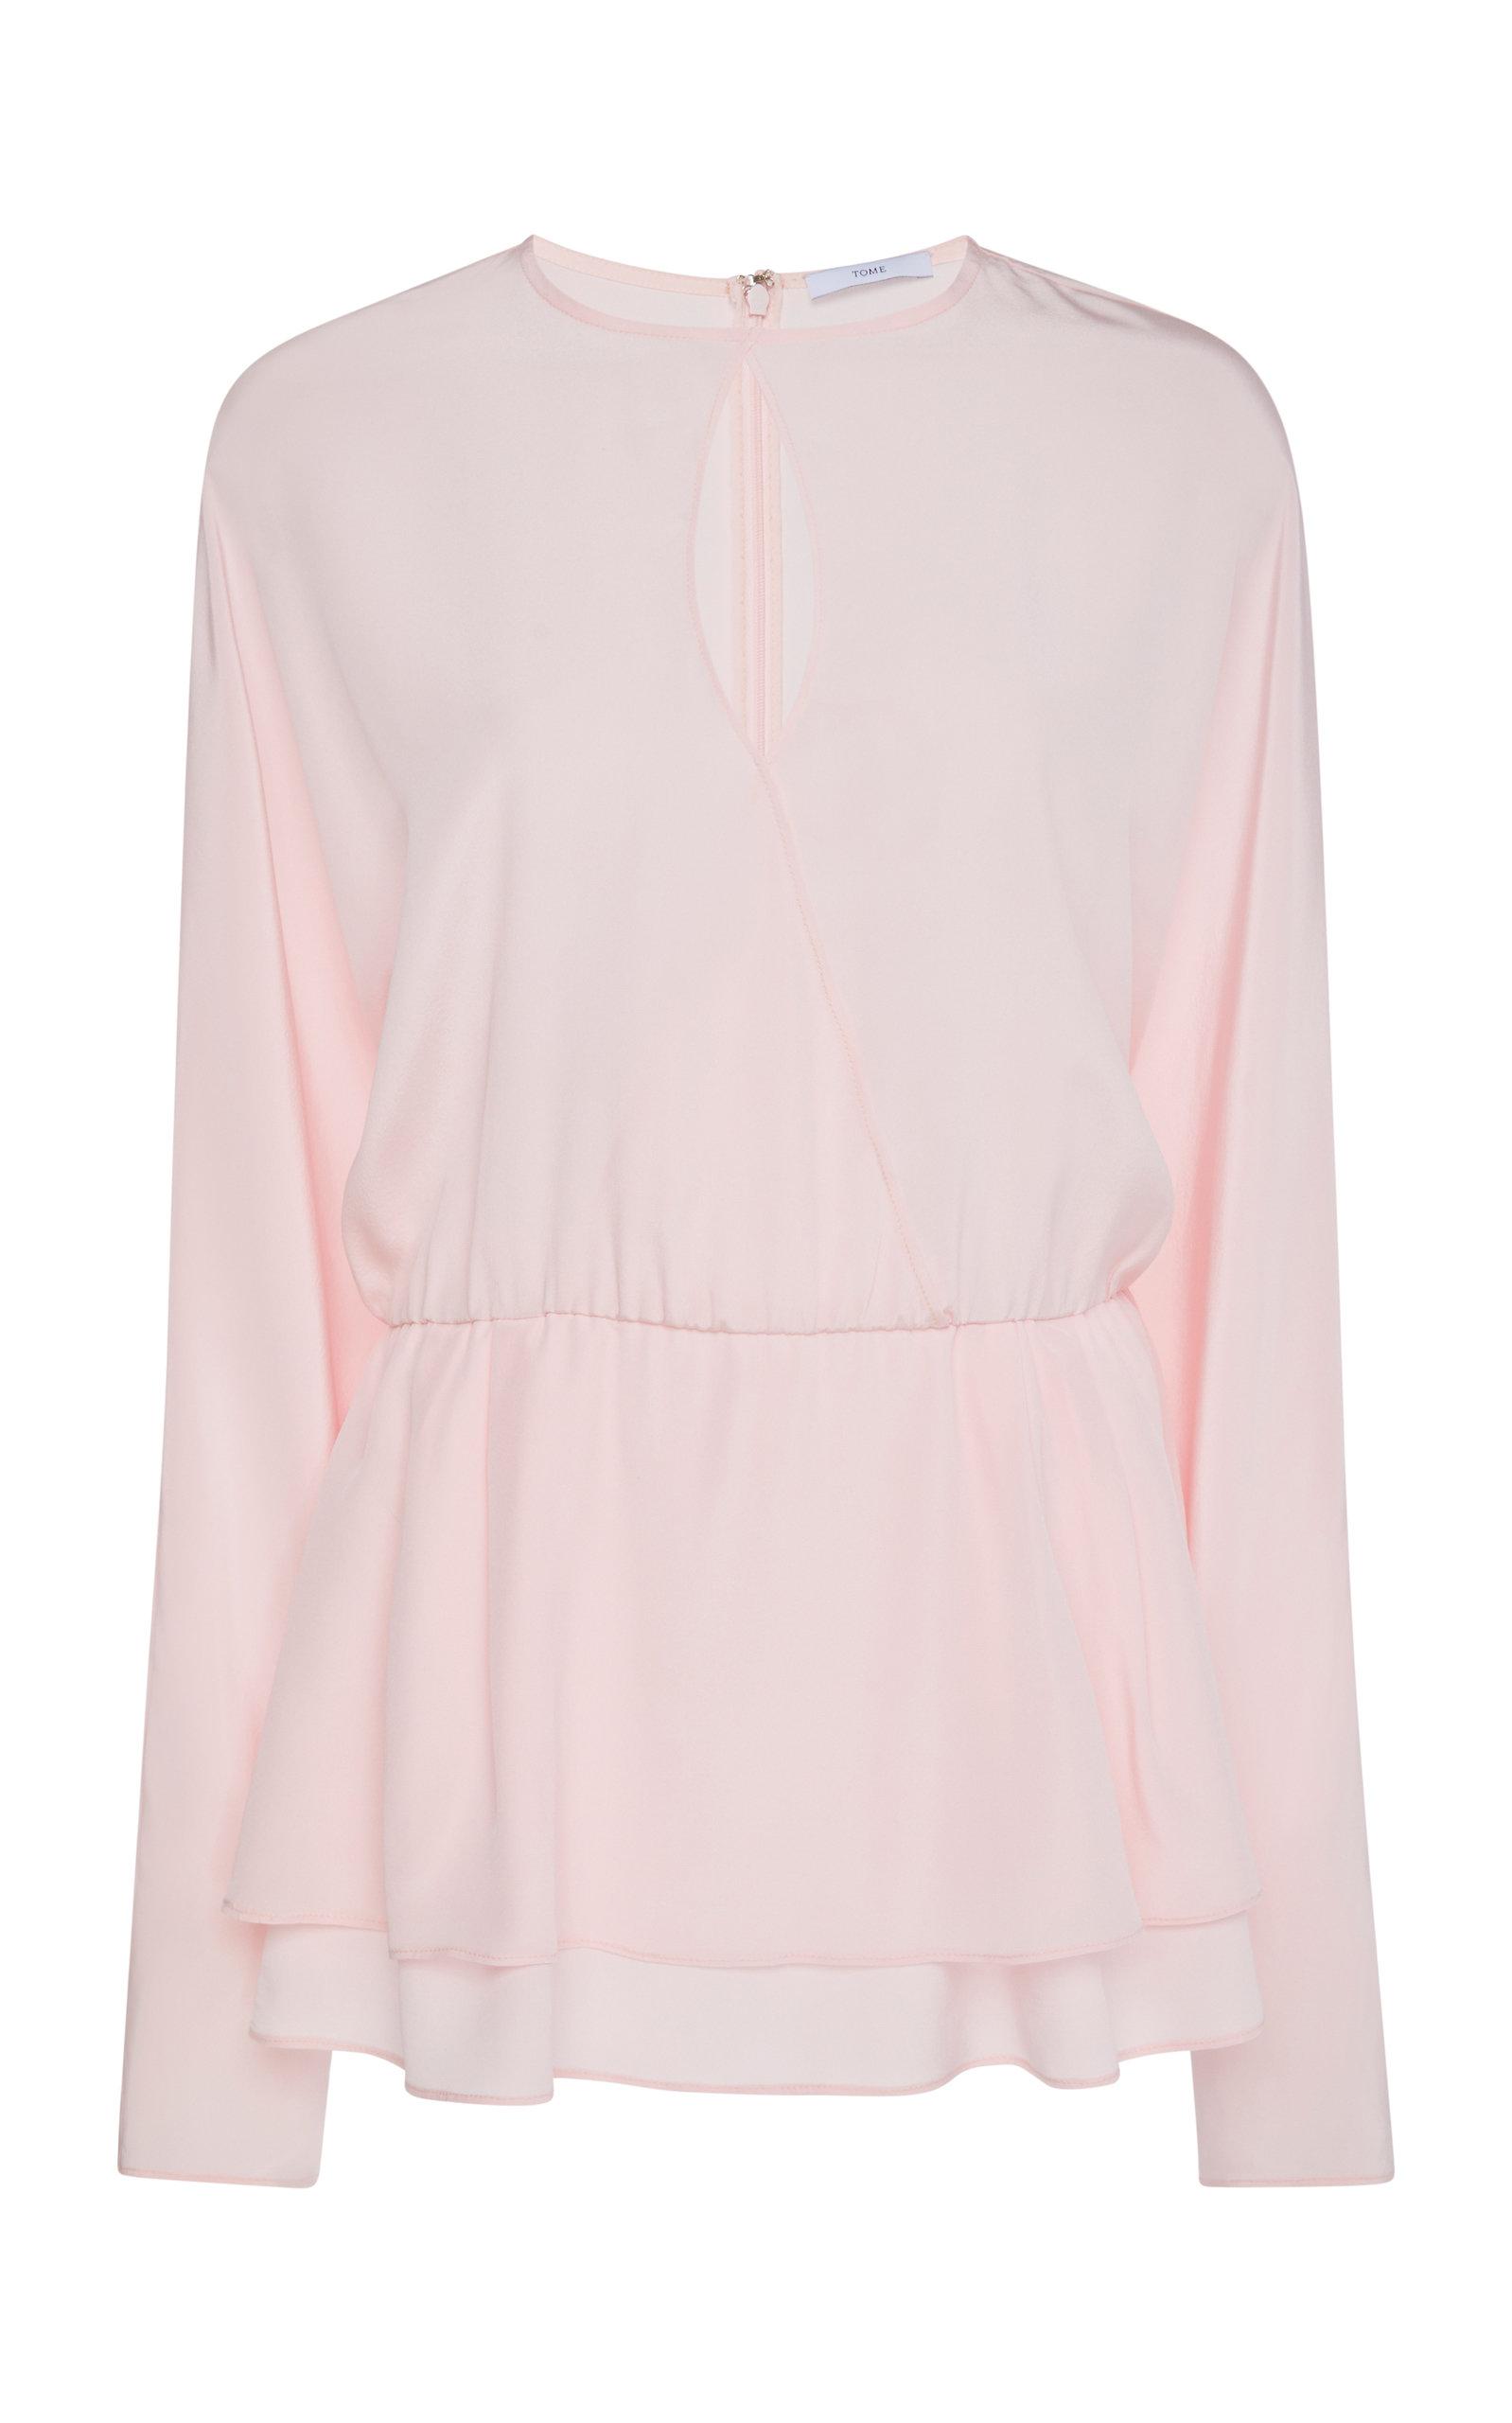 Overlapping Keyhole Blouse by Tome